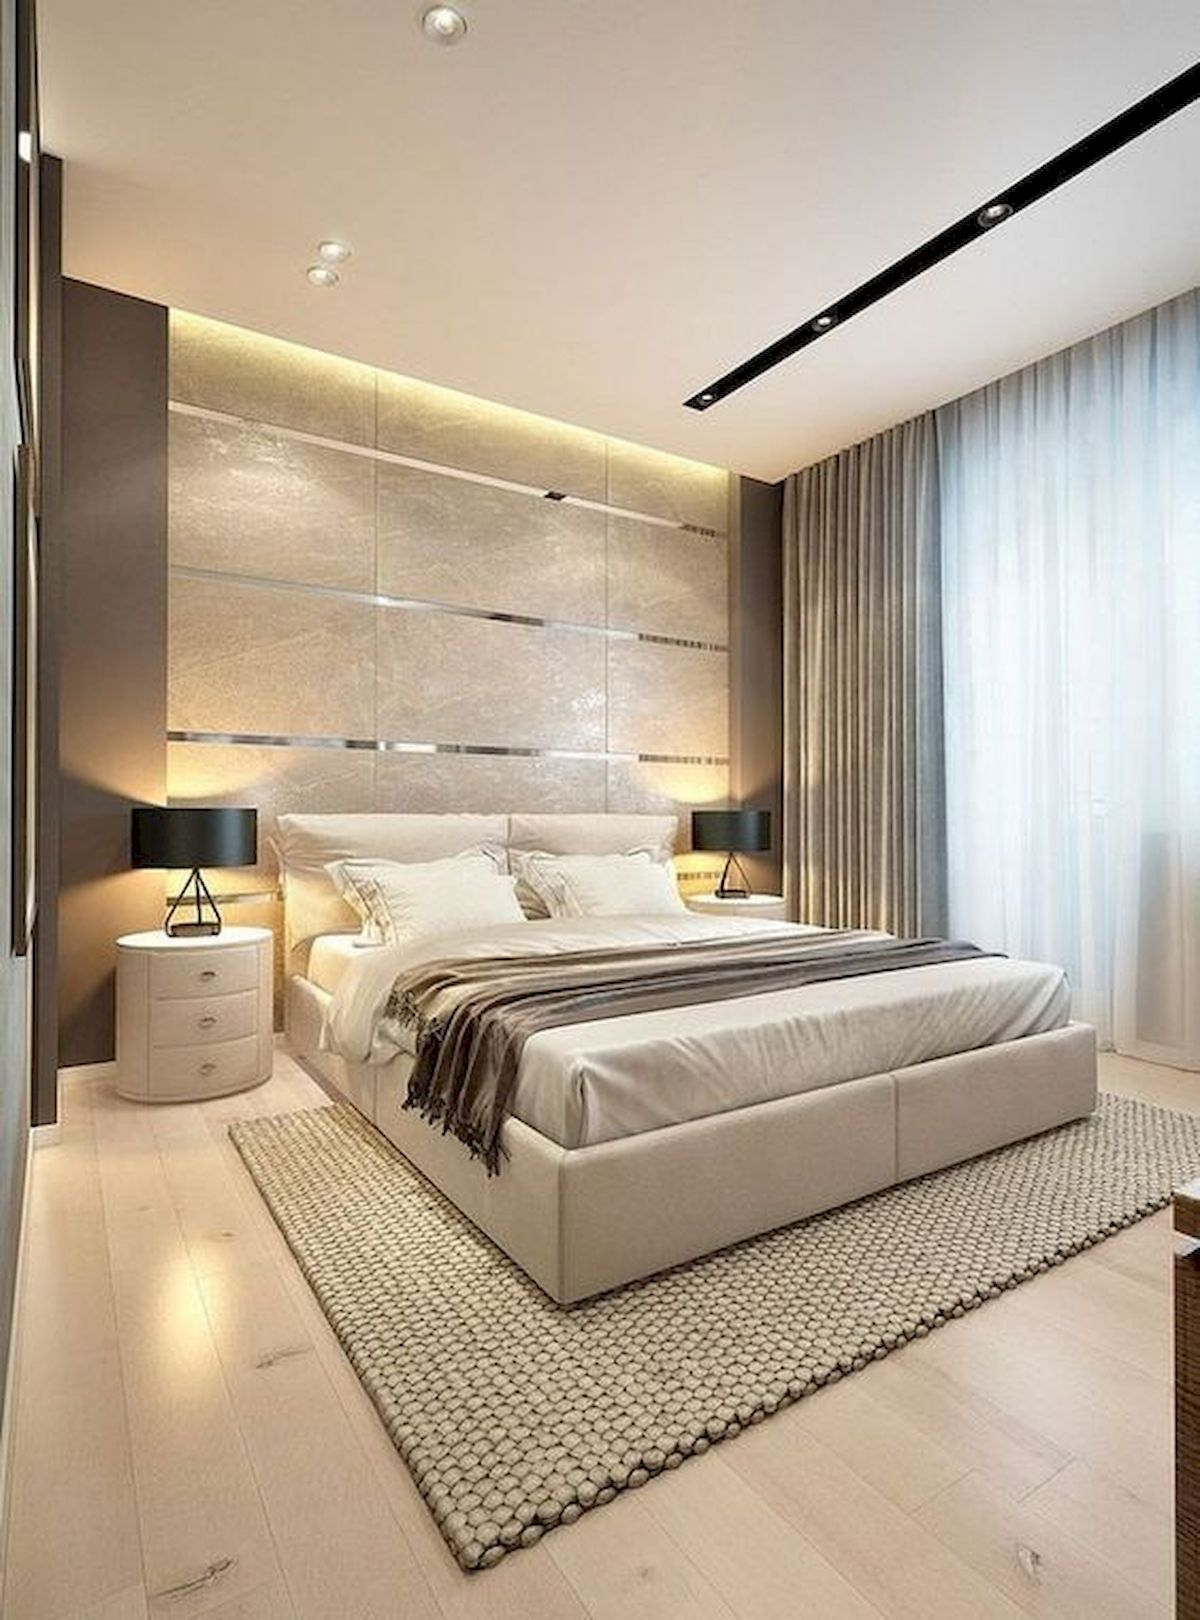 40 Incredible Modern Bedroom Design Ideas That Will Be Relax Place (3)